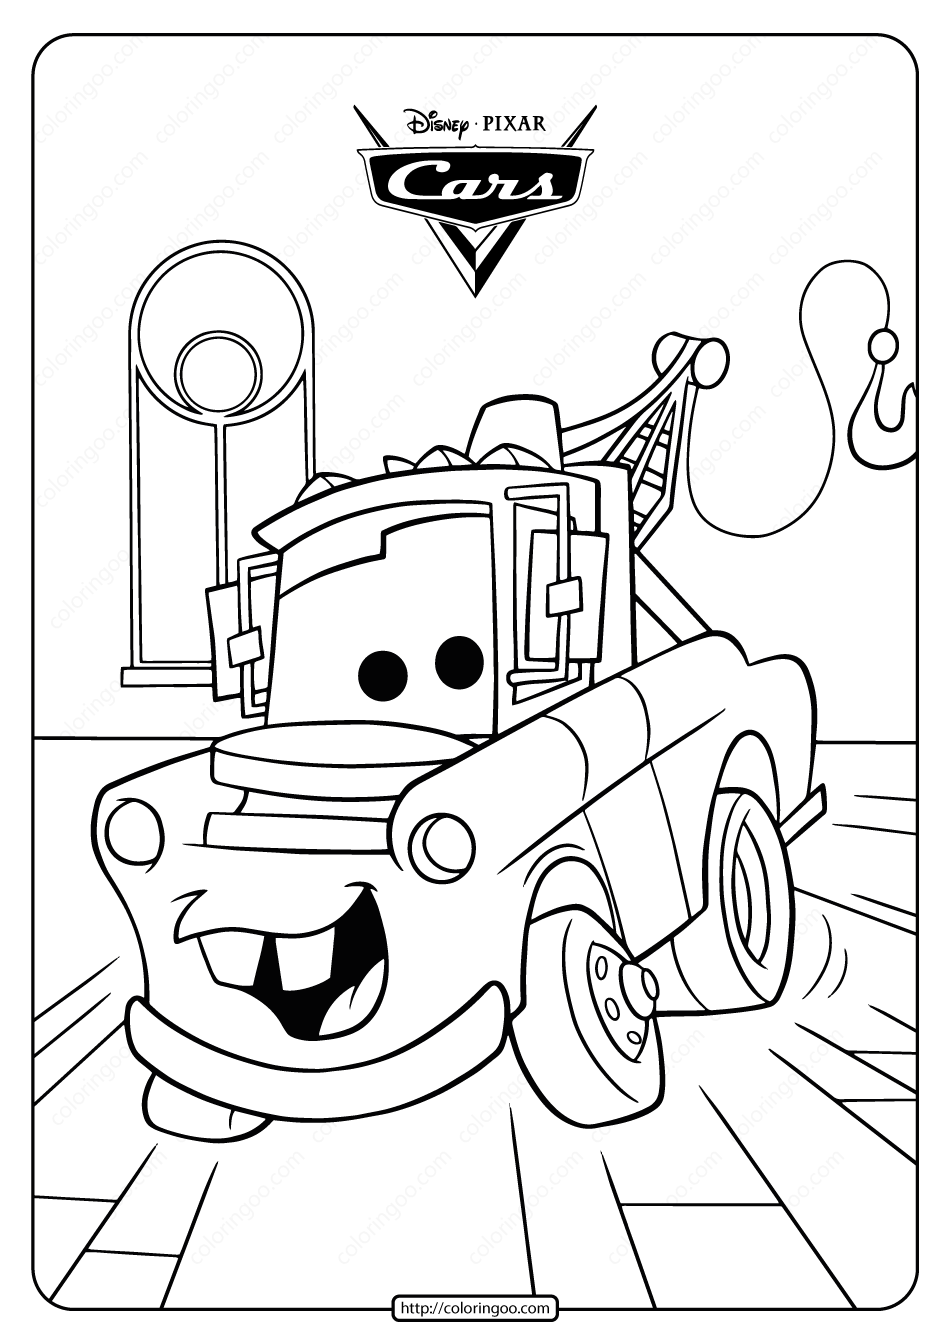 Disney Cars Tow Mater Truck Coloring Pages Monster Truck Coloring Pages Cartoon Coloring Pages Truck Coloring Pages